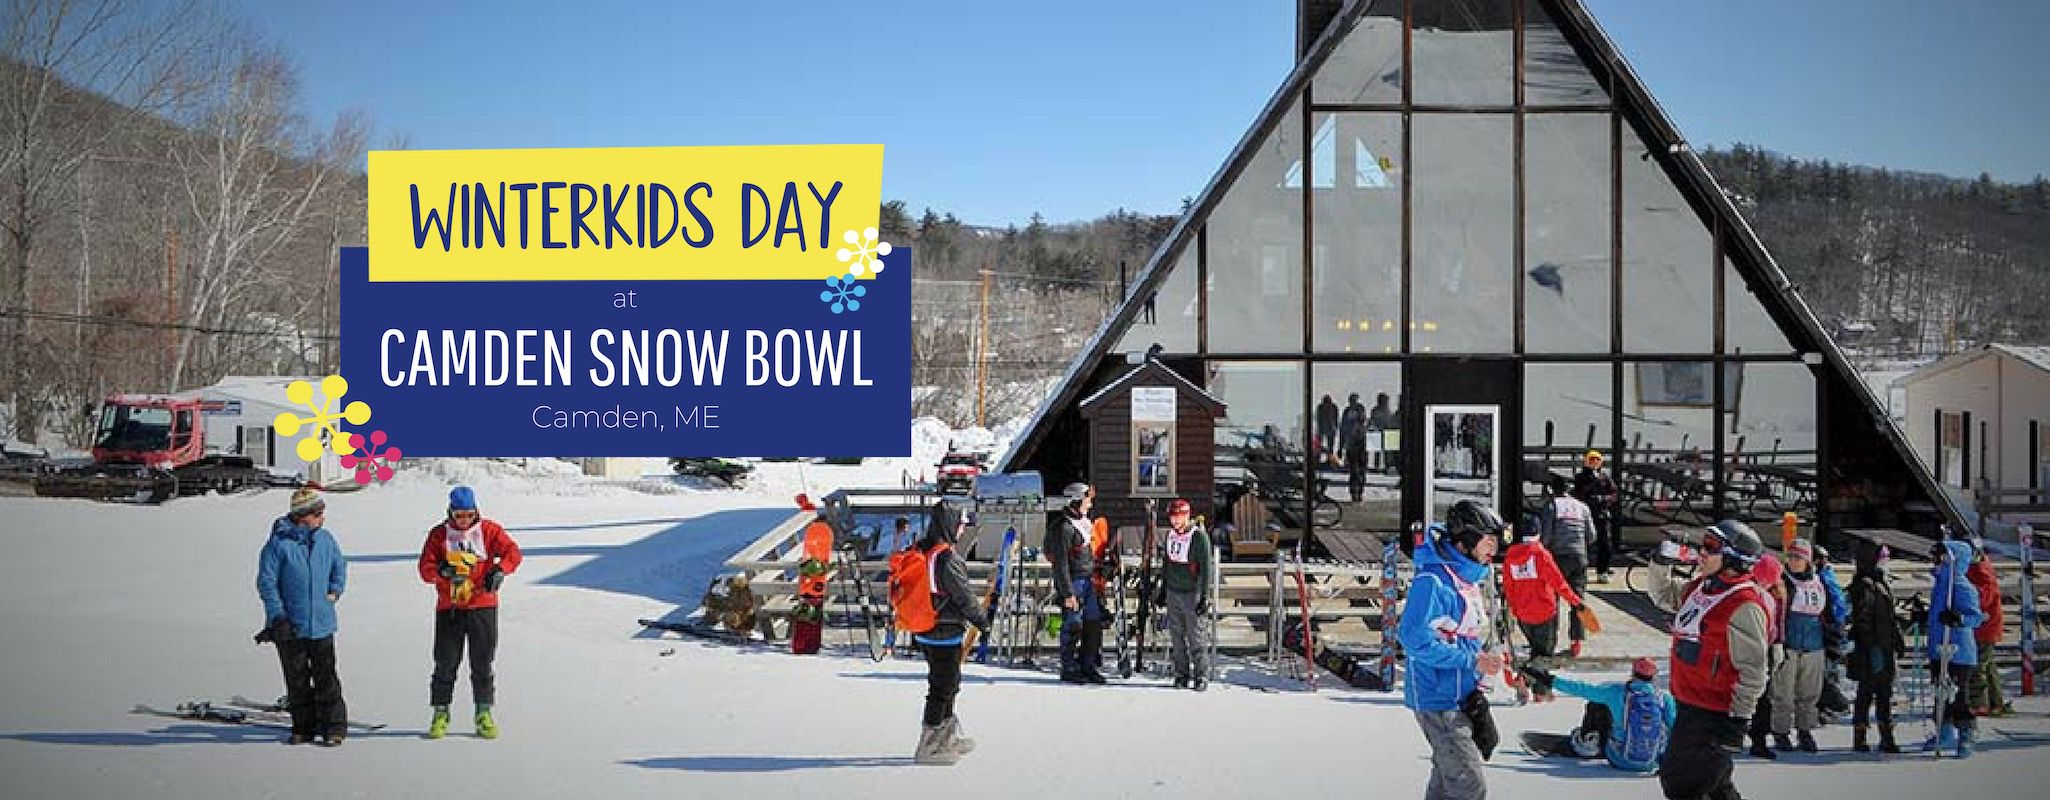 WinterKids Day Camden Snow Bowl 2019